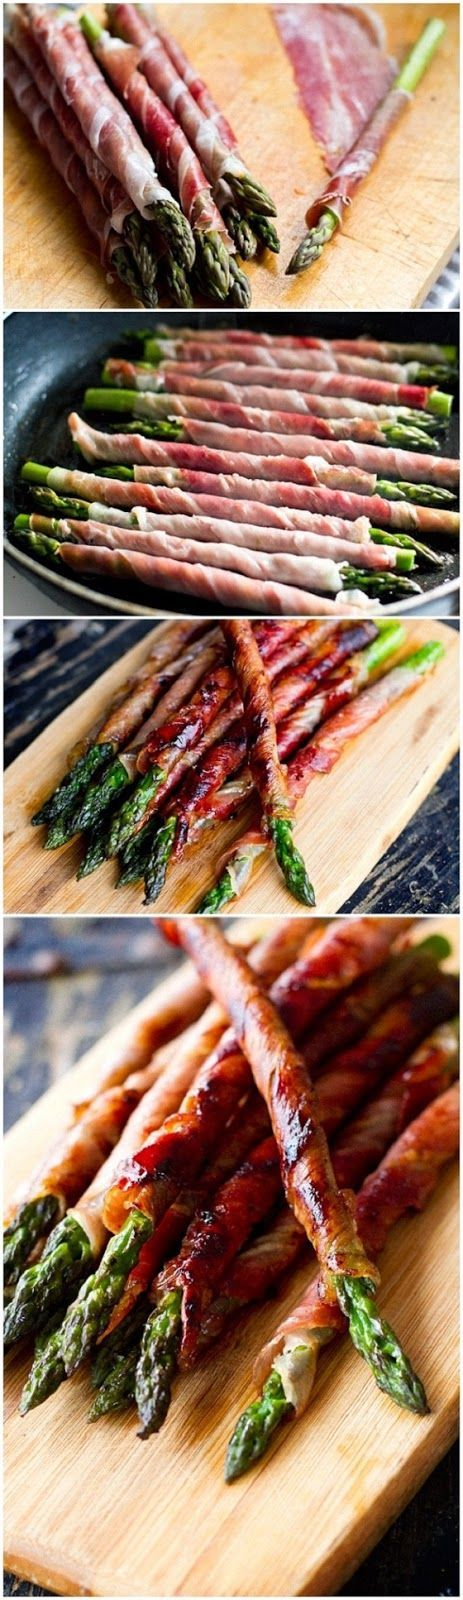 Prosciutto Wrapped Asparagus: Choose asparagus spears that are about 3/4-inch thick. Toss lightly in olive oil, salt, and pepper. Cut prosci...